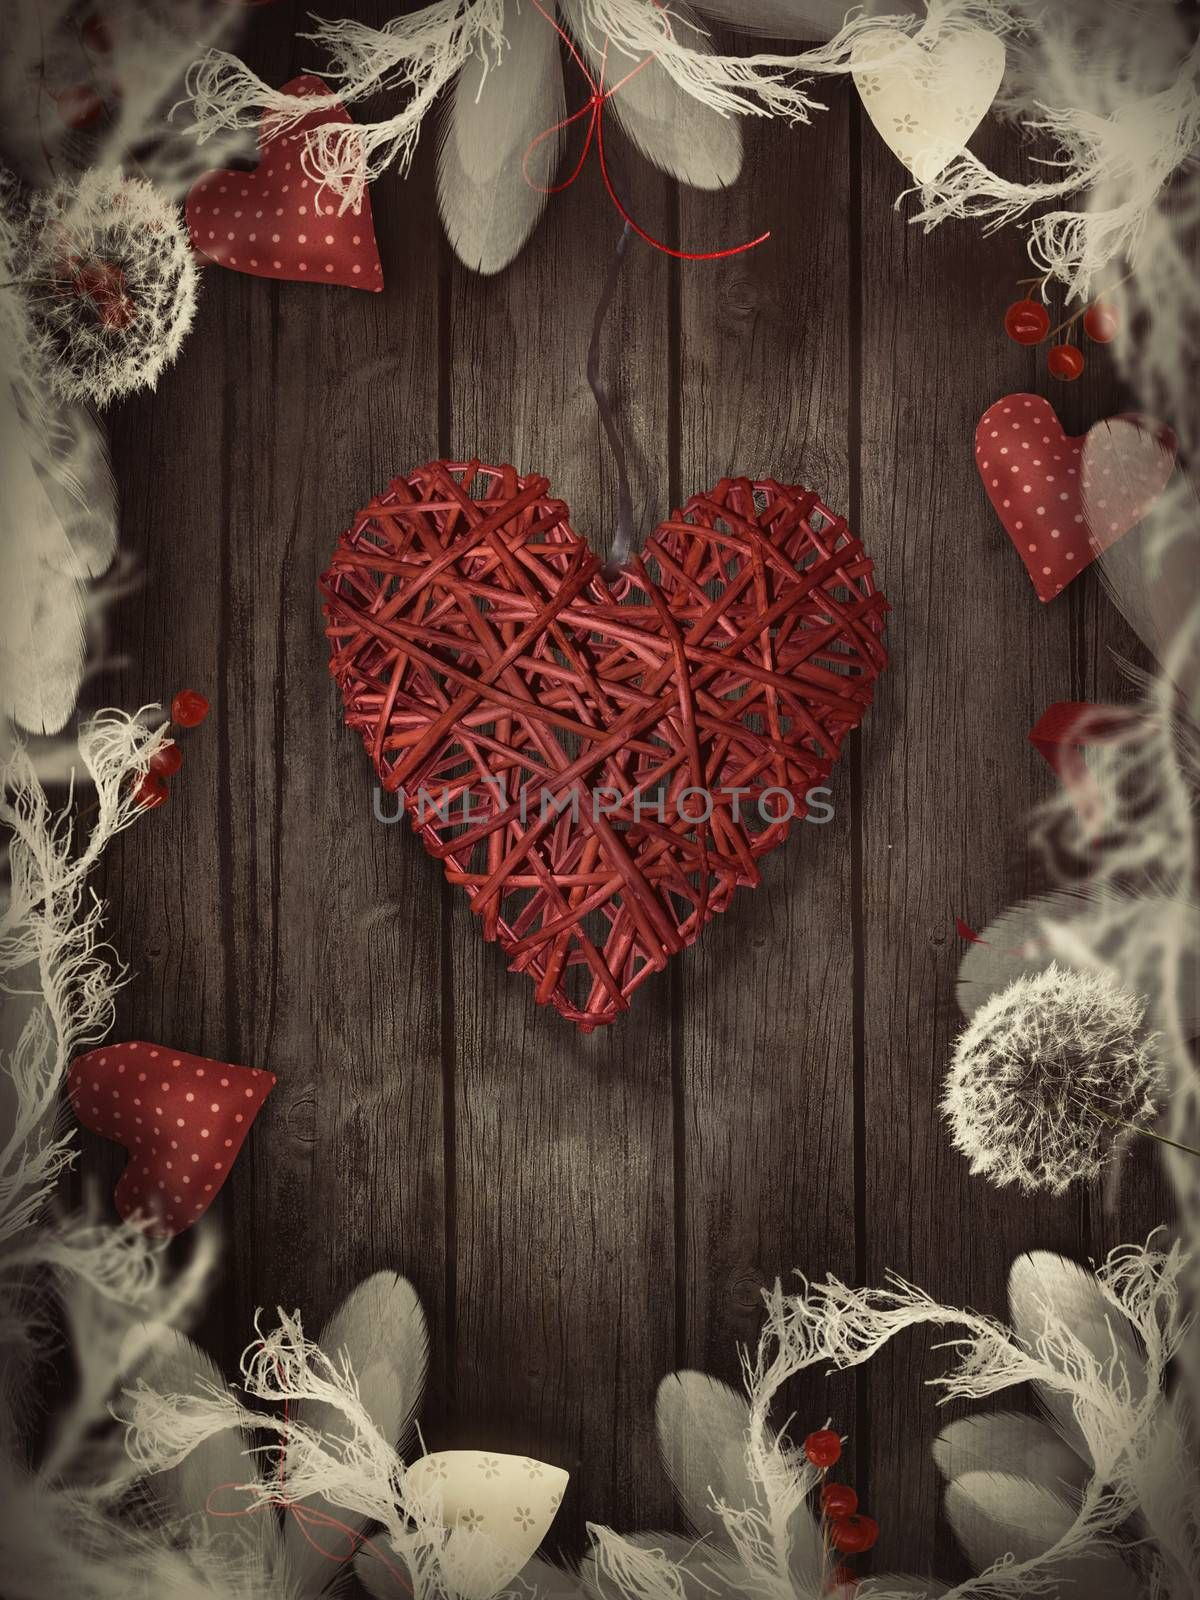 Valentines design - Love wreath with copyspace on wooden background. Valentines ornaments on wood with hearts and ribbons.